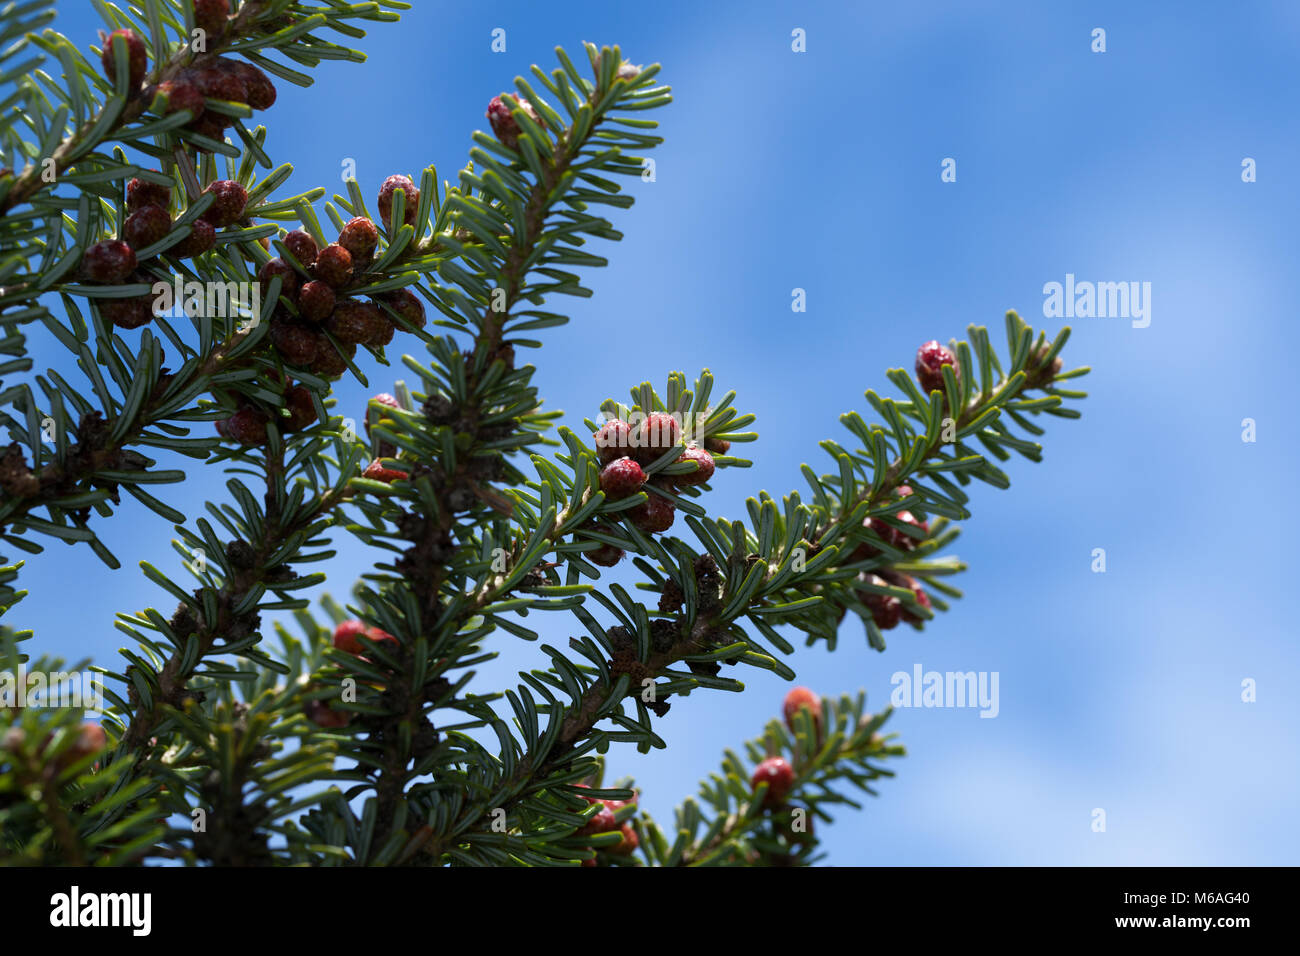 Korean Fir, Koreagran (Abies koreana) - Stock Image